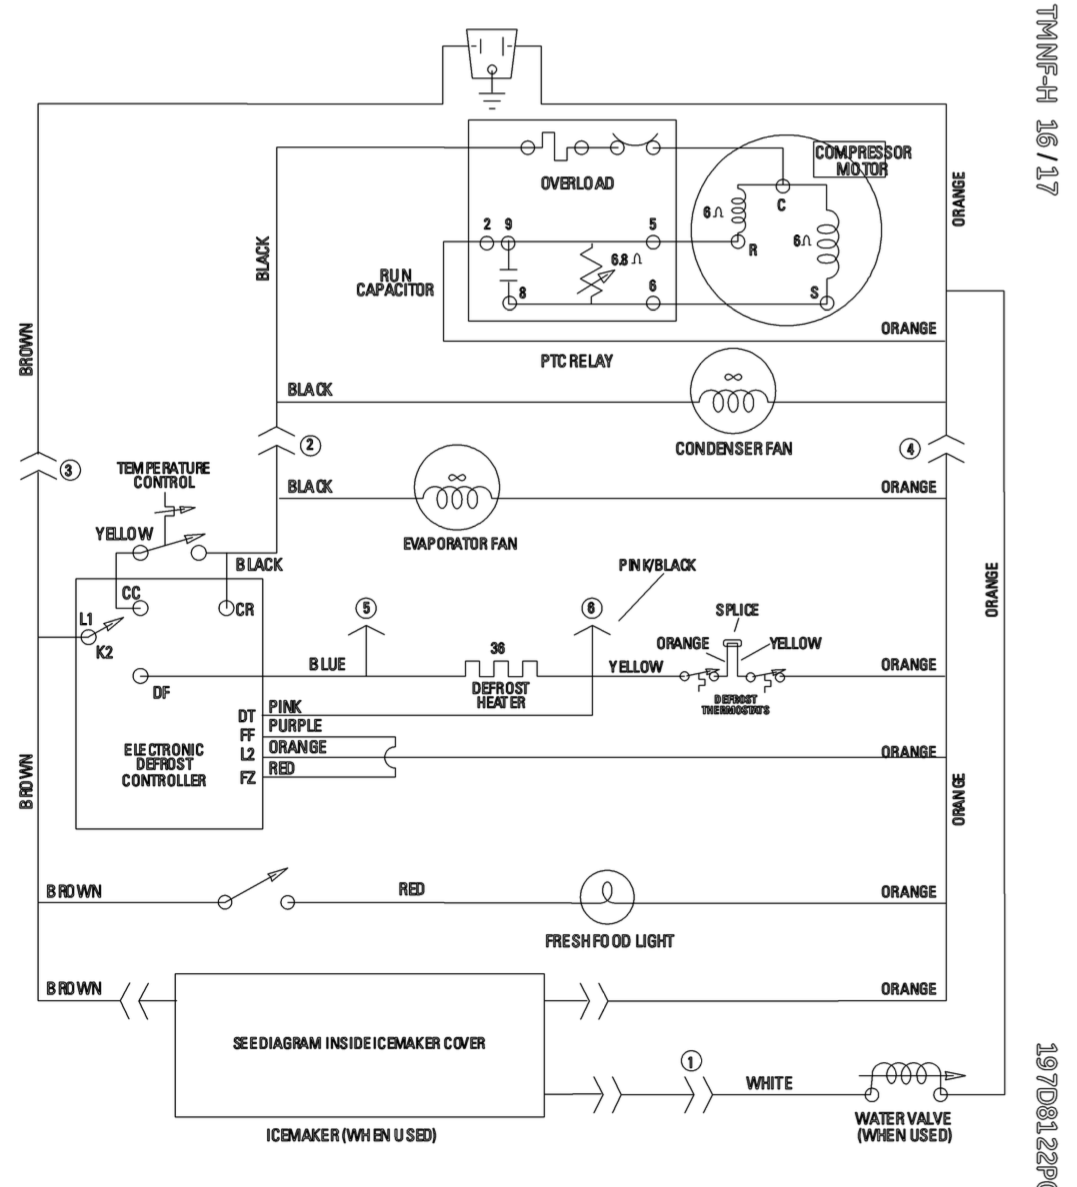 hight resolution of whirlpool profile refrigerator wiring diagram 45 wiring ge gss22 refrigerator wiring schematic refrigerator parts schematic